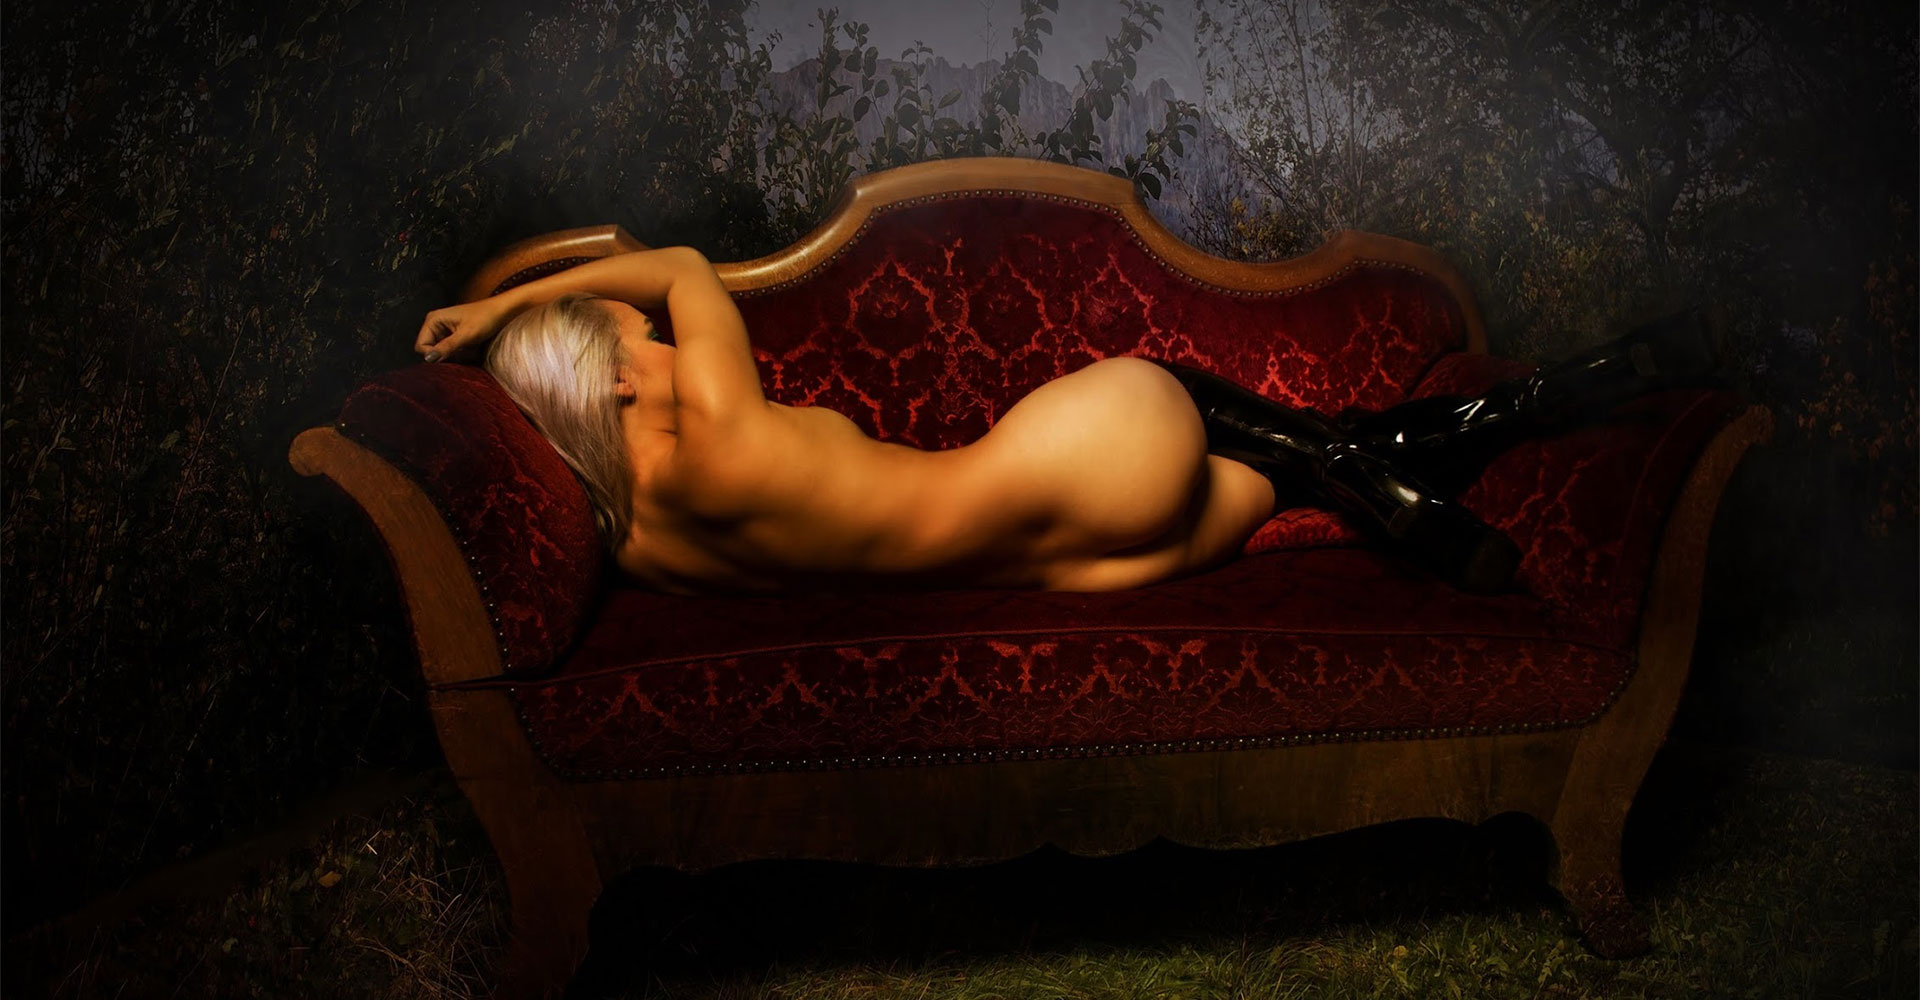 Roland Rick Photography, fine art photography, red couch